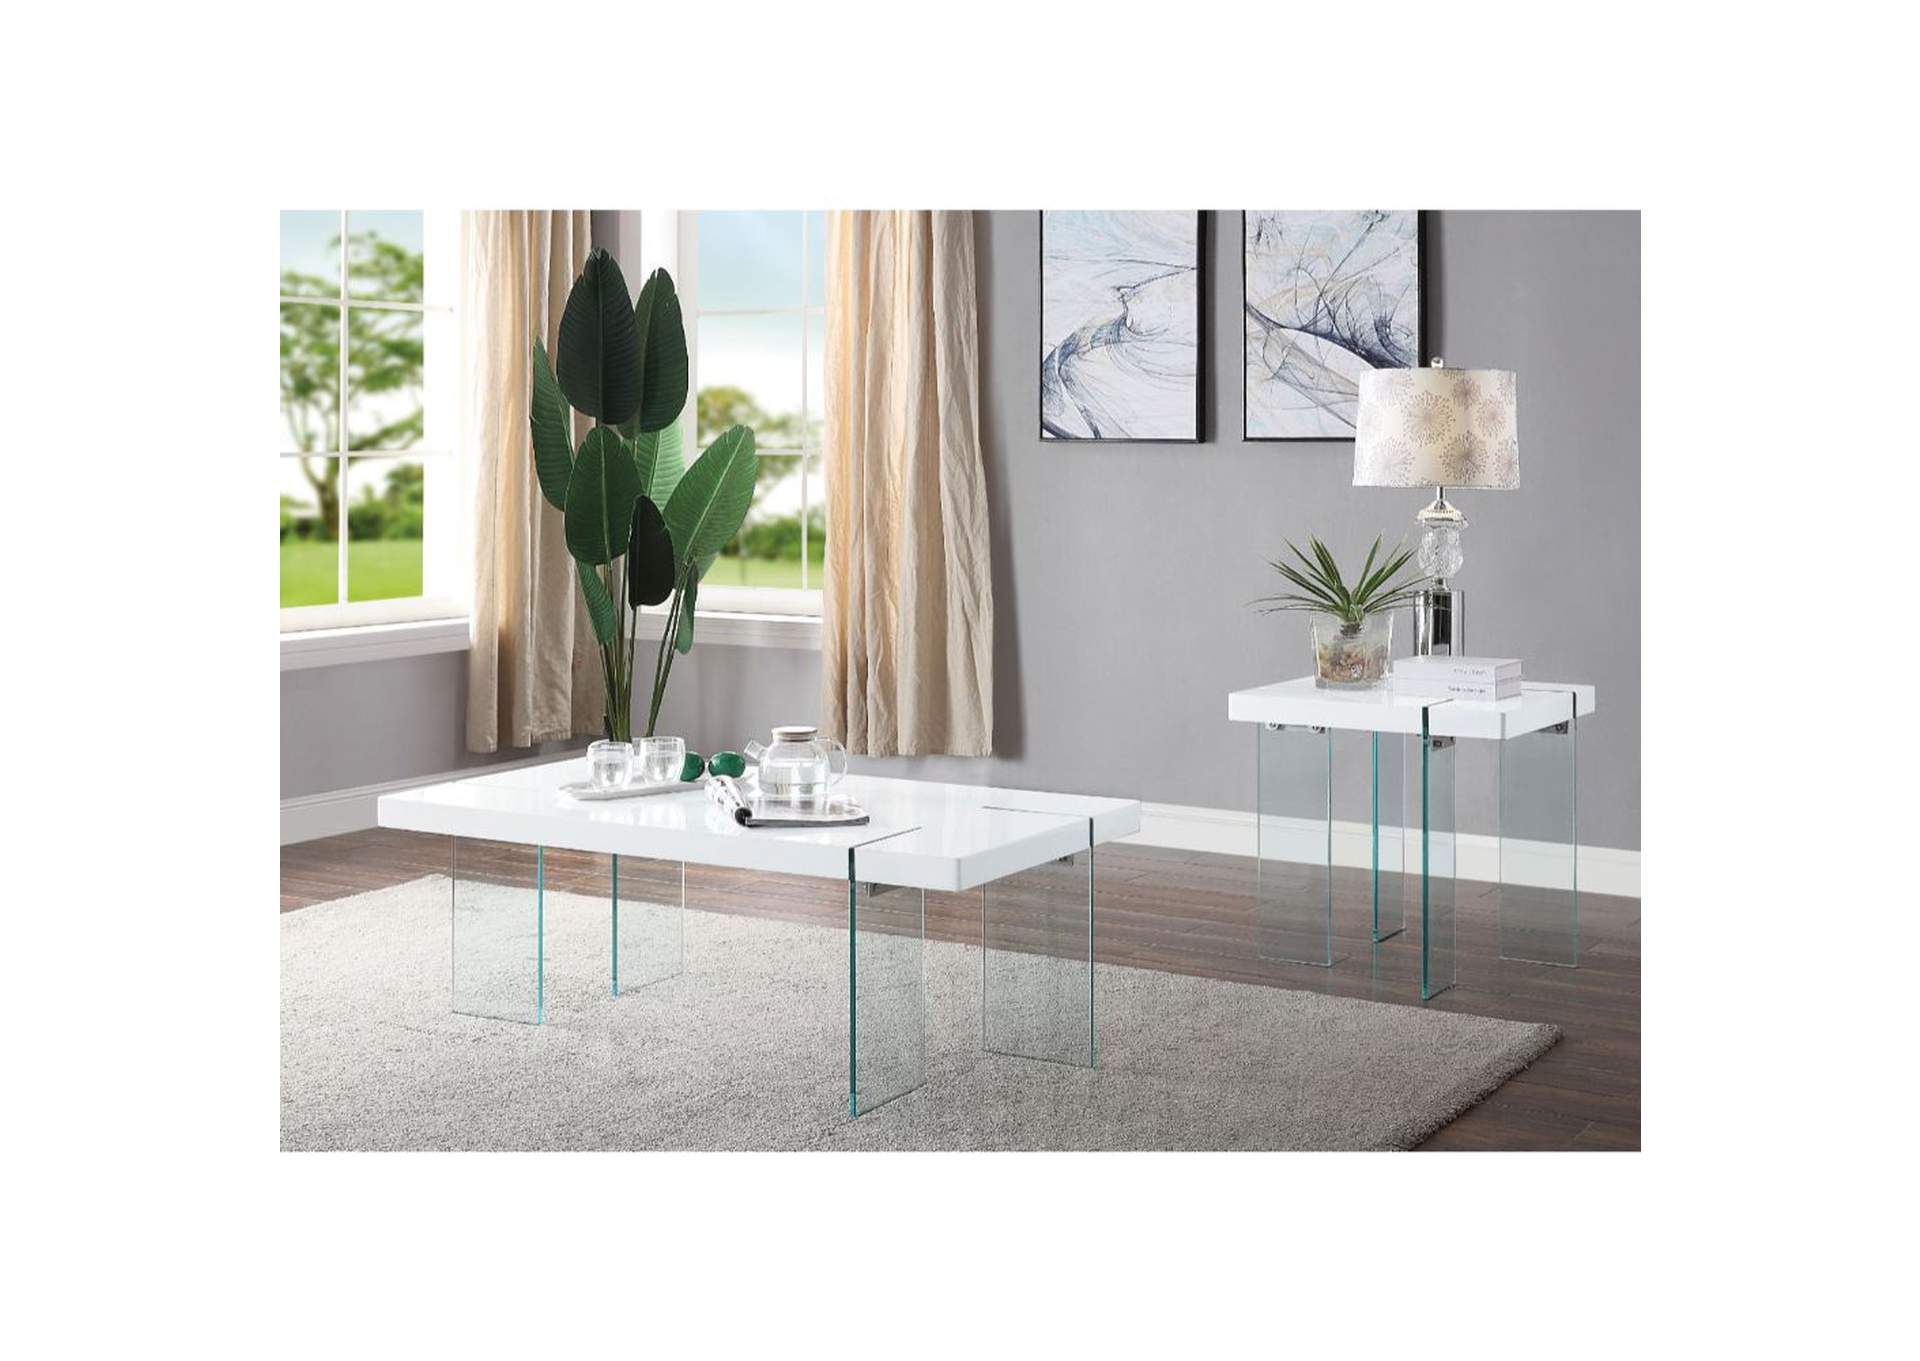 Noland White High Gloss & Clear Glass Coffee Table,Acme